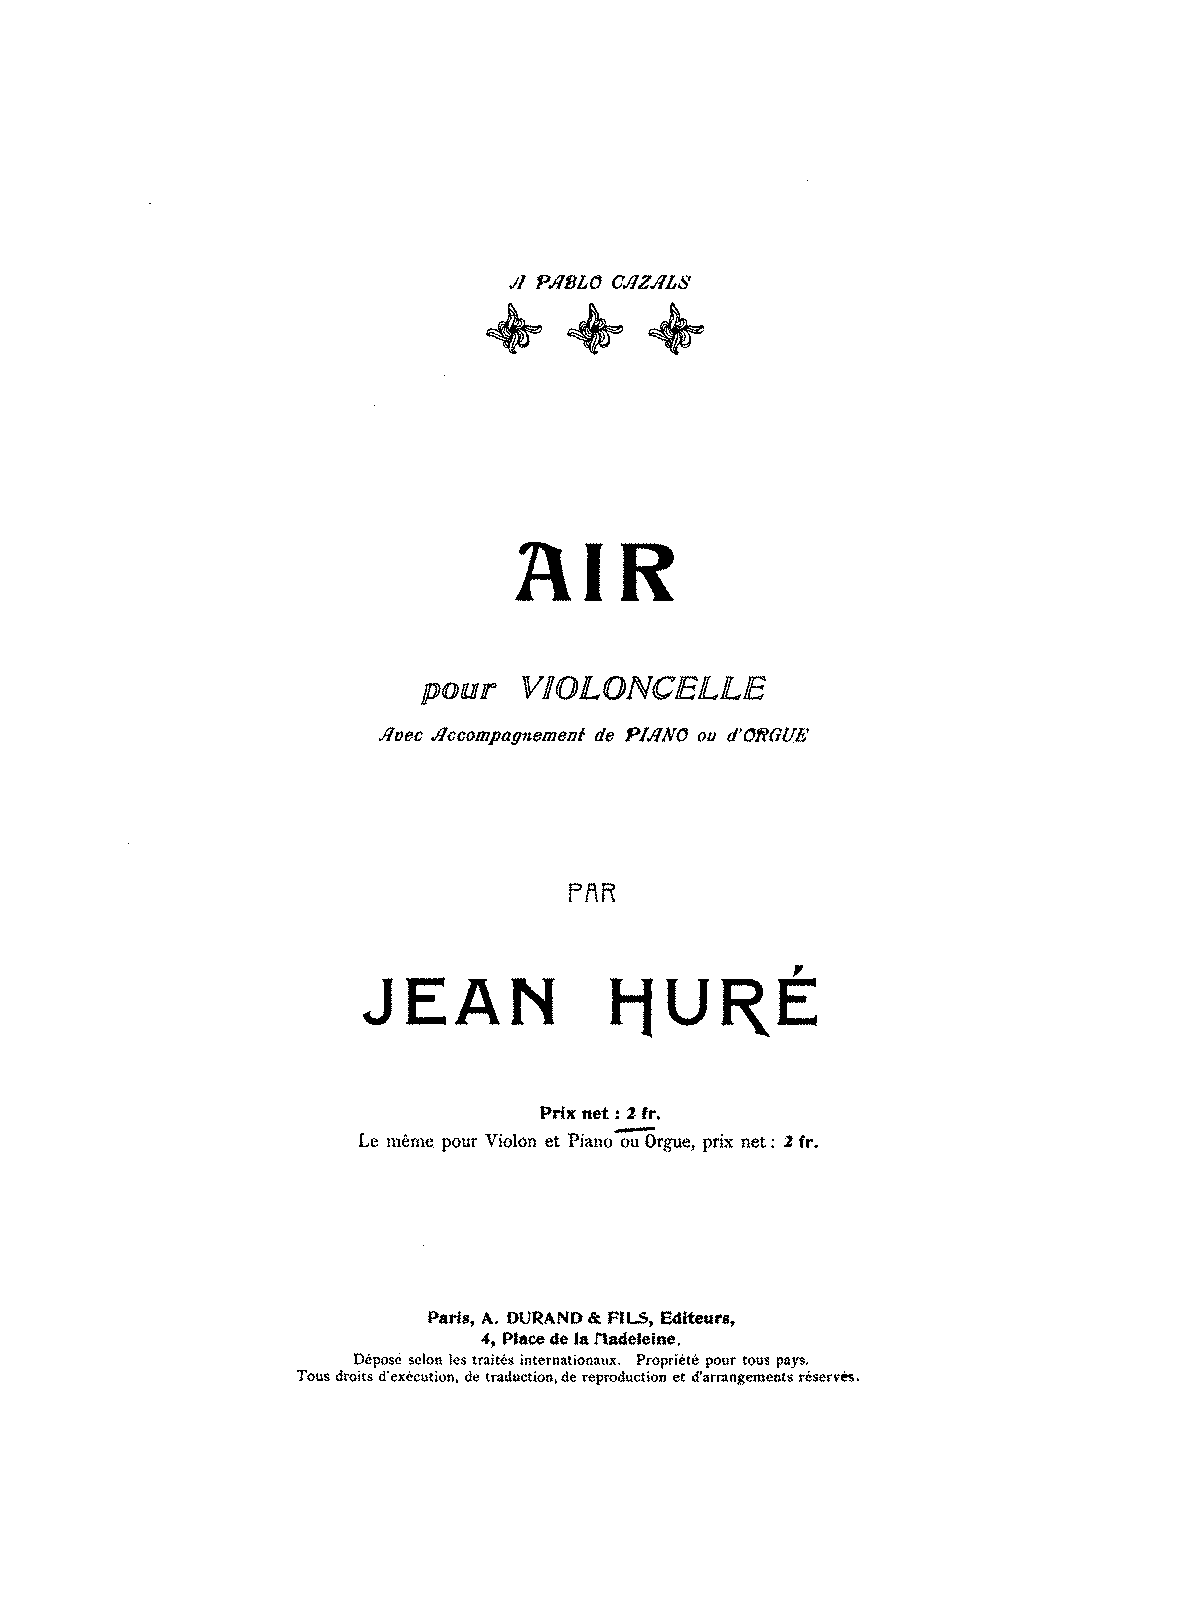 PMLP52673-Hure - Air for Cello and Piano.pdf